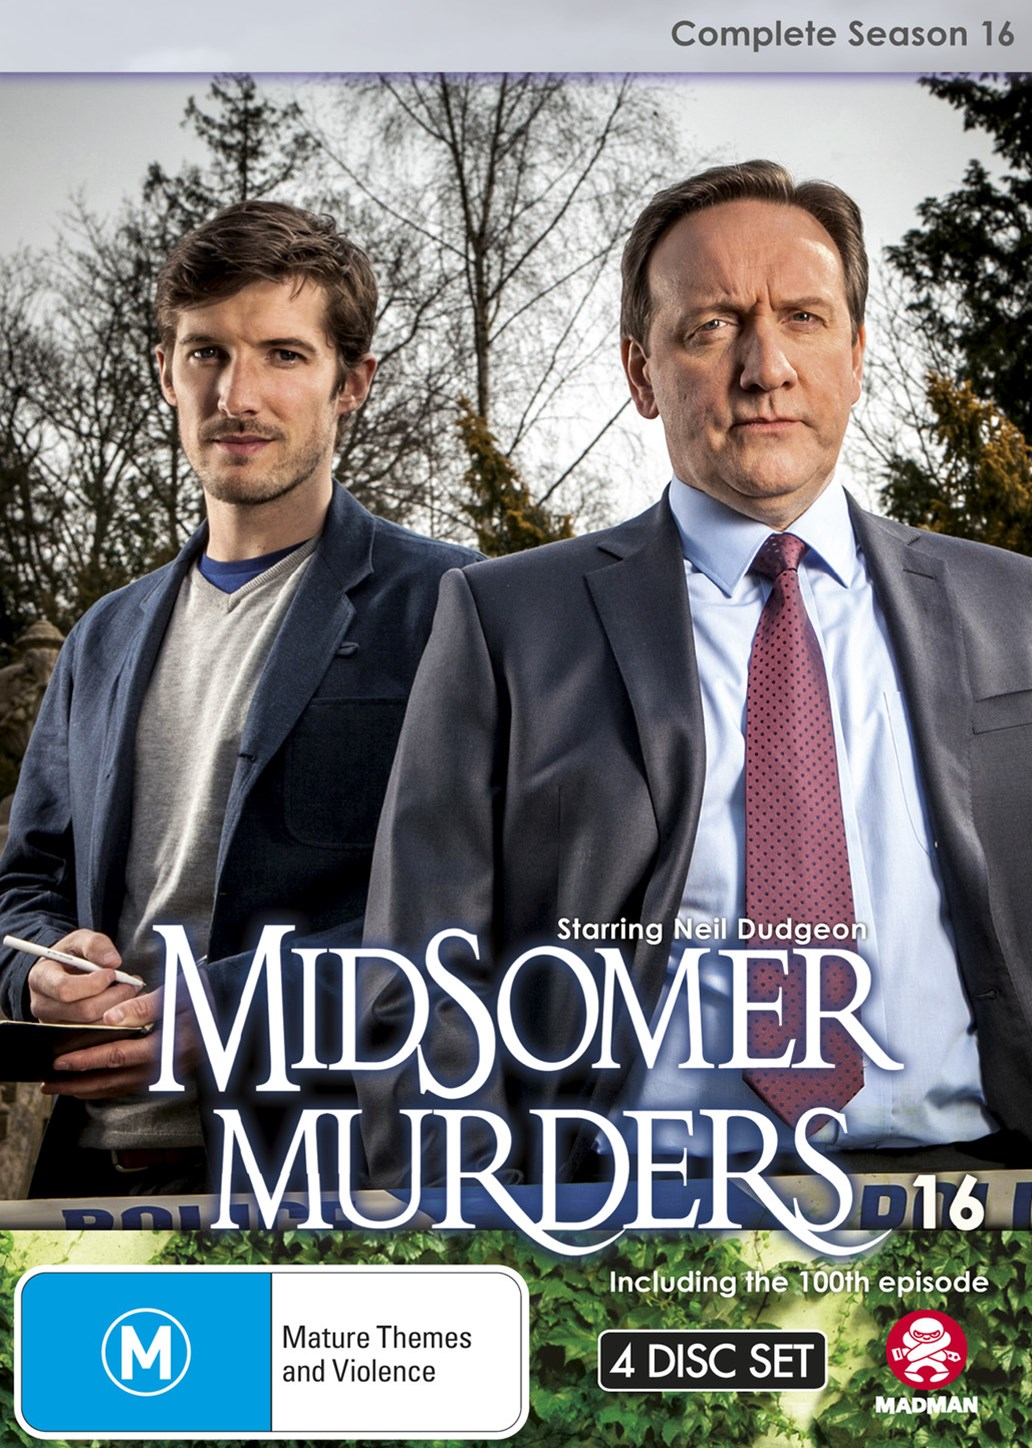 Midsomer Murders: Complete Season 16 (Single Case Version)